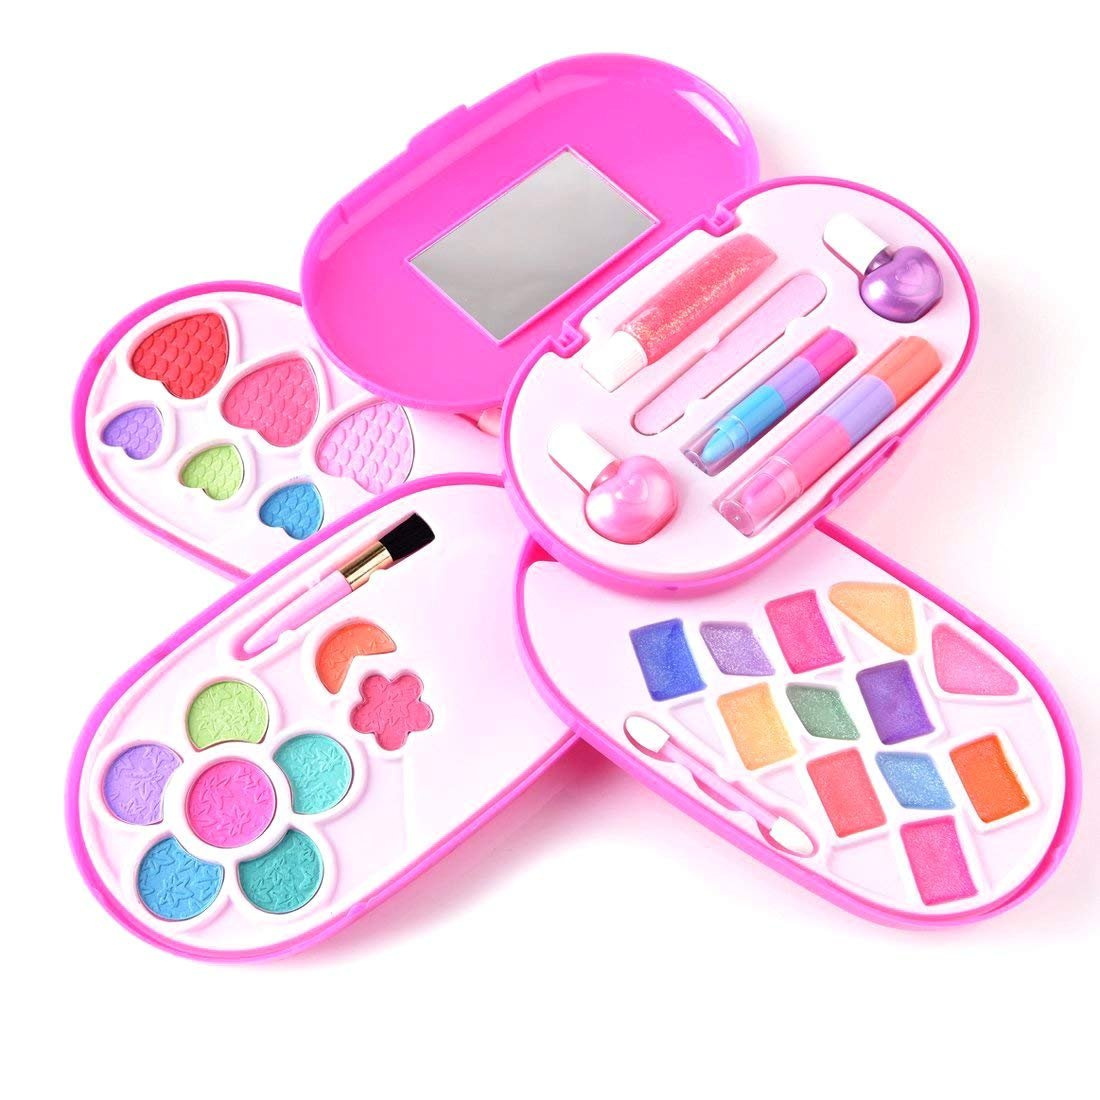 BonnieSun Kids Makeup Kits Girls Washable Cosmetics Dress-up Toys Safety Tested Vanity Deluxe Beauty Palette Set Mirror by BonnieSun (Image #3)